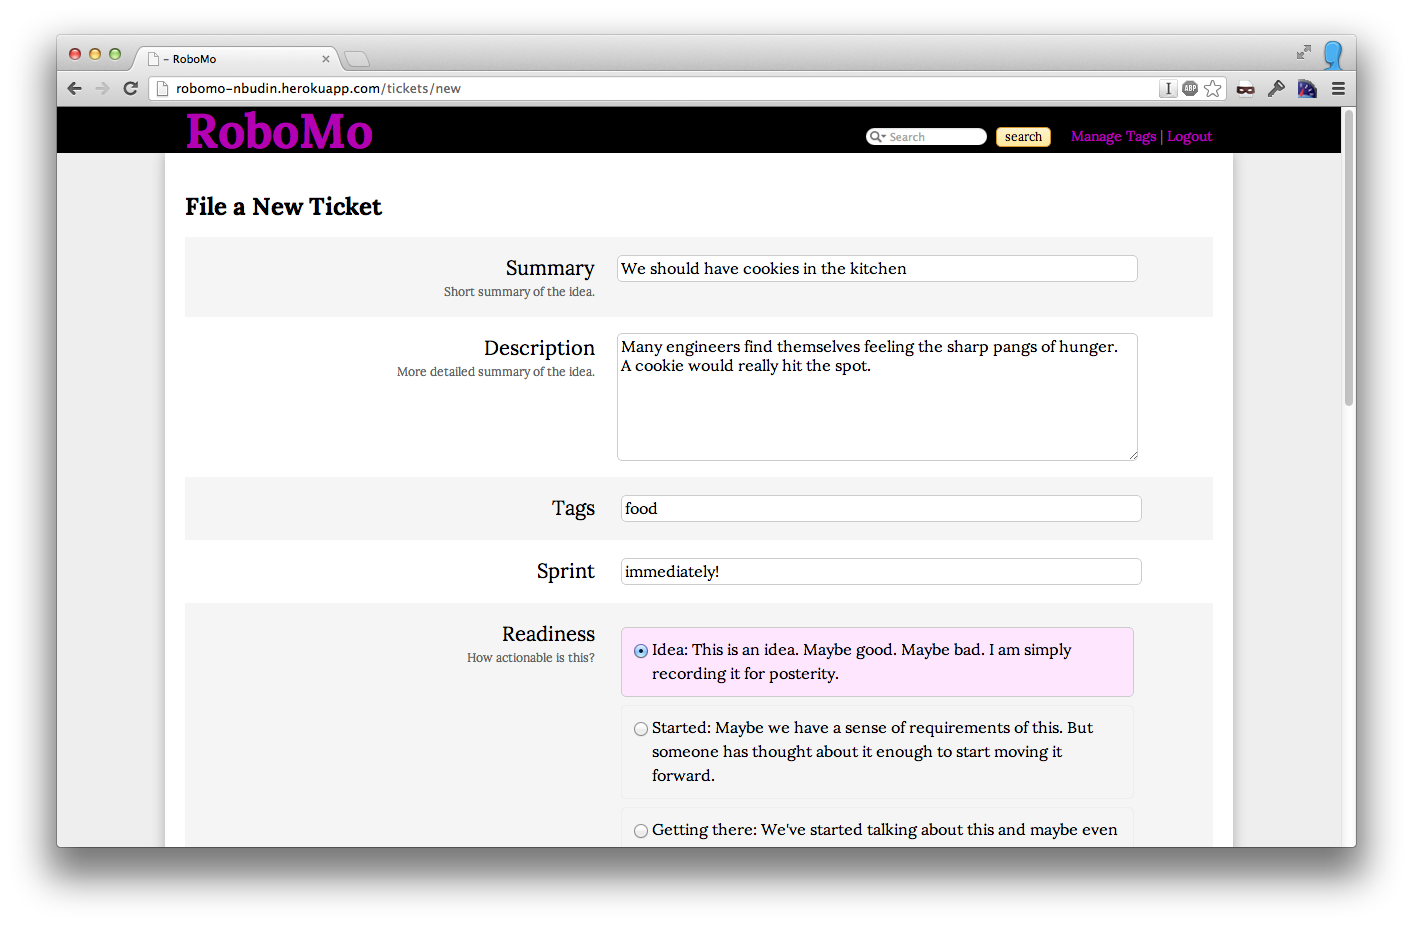 Robomo ticket entry